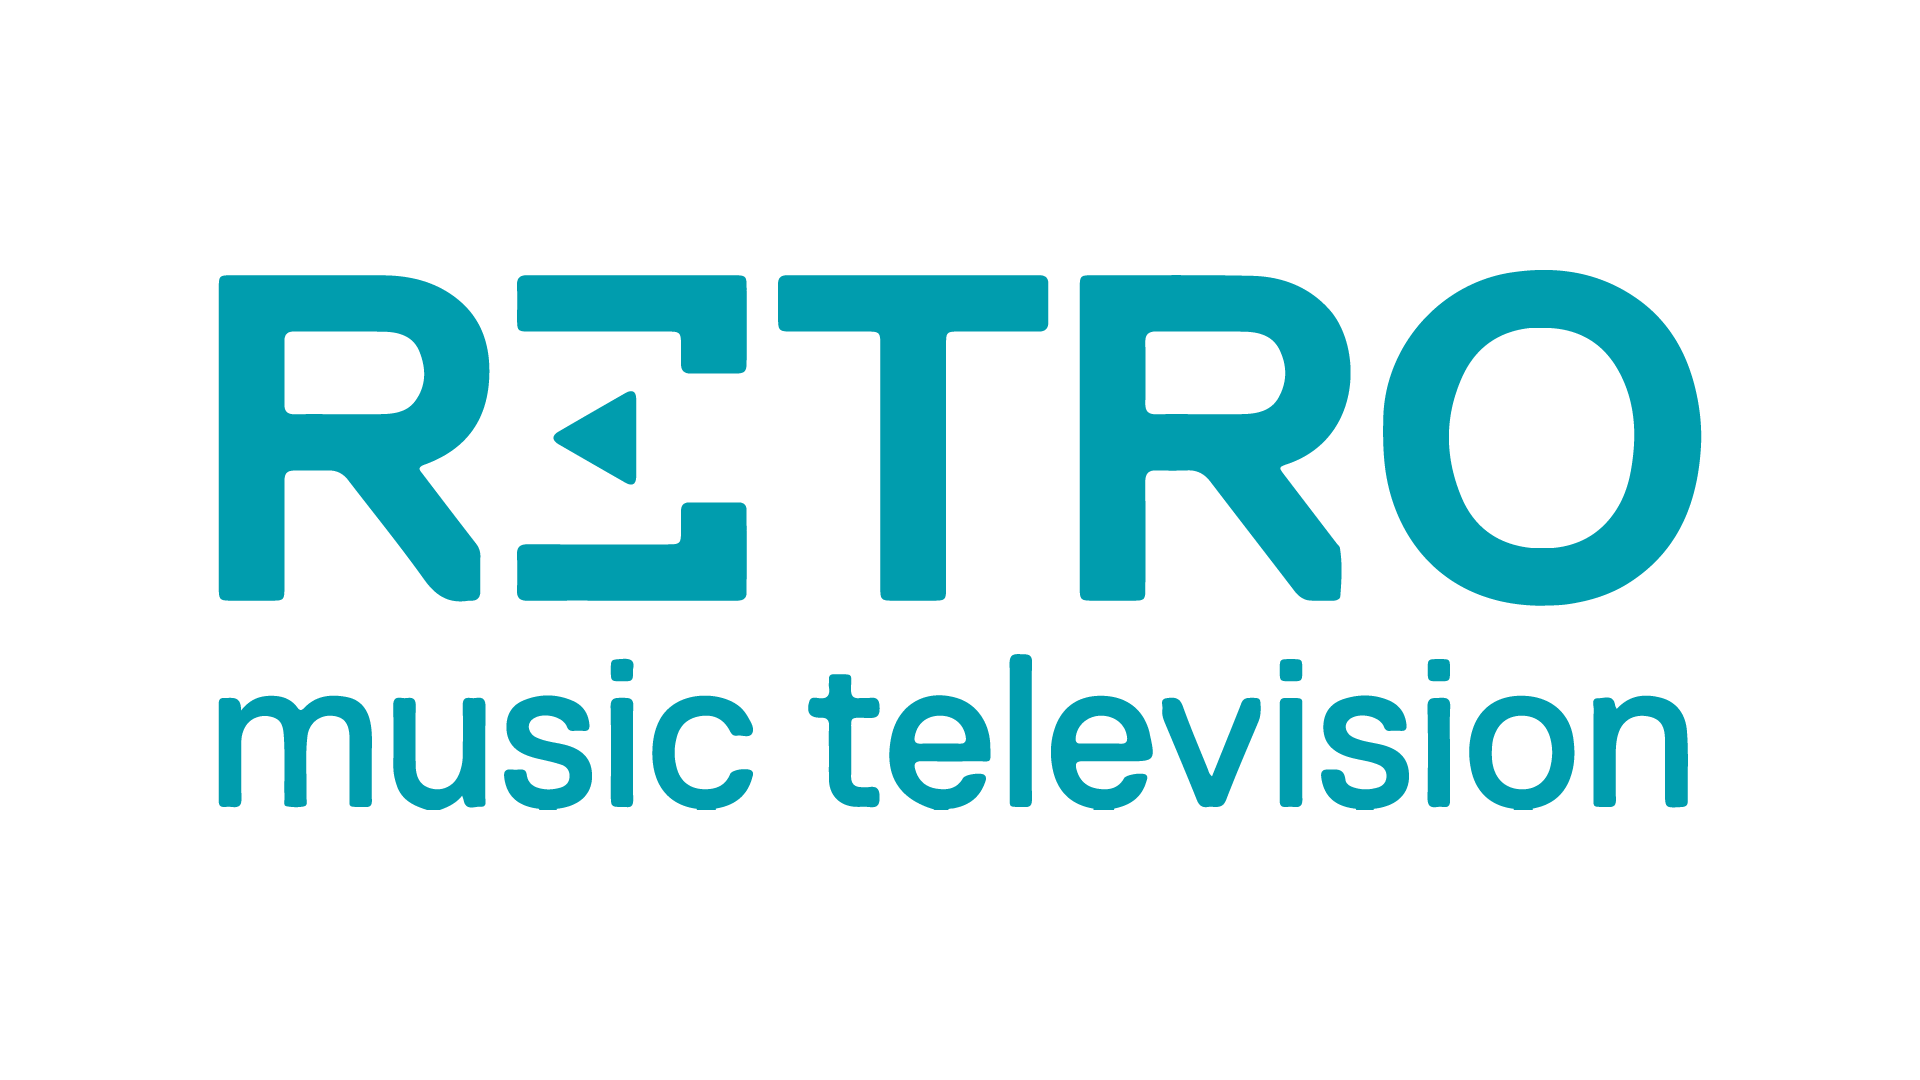 Retro Music Television Live TV, Online